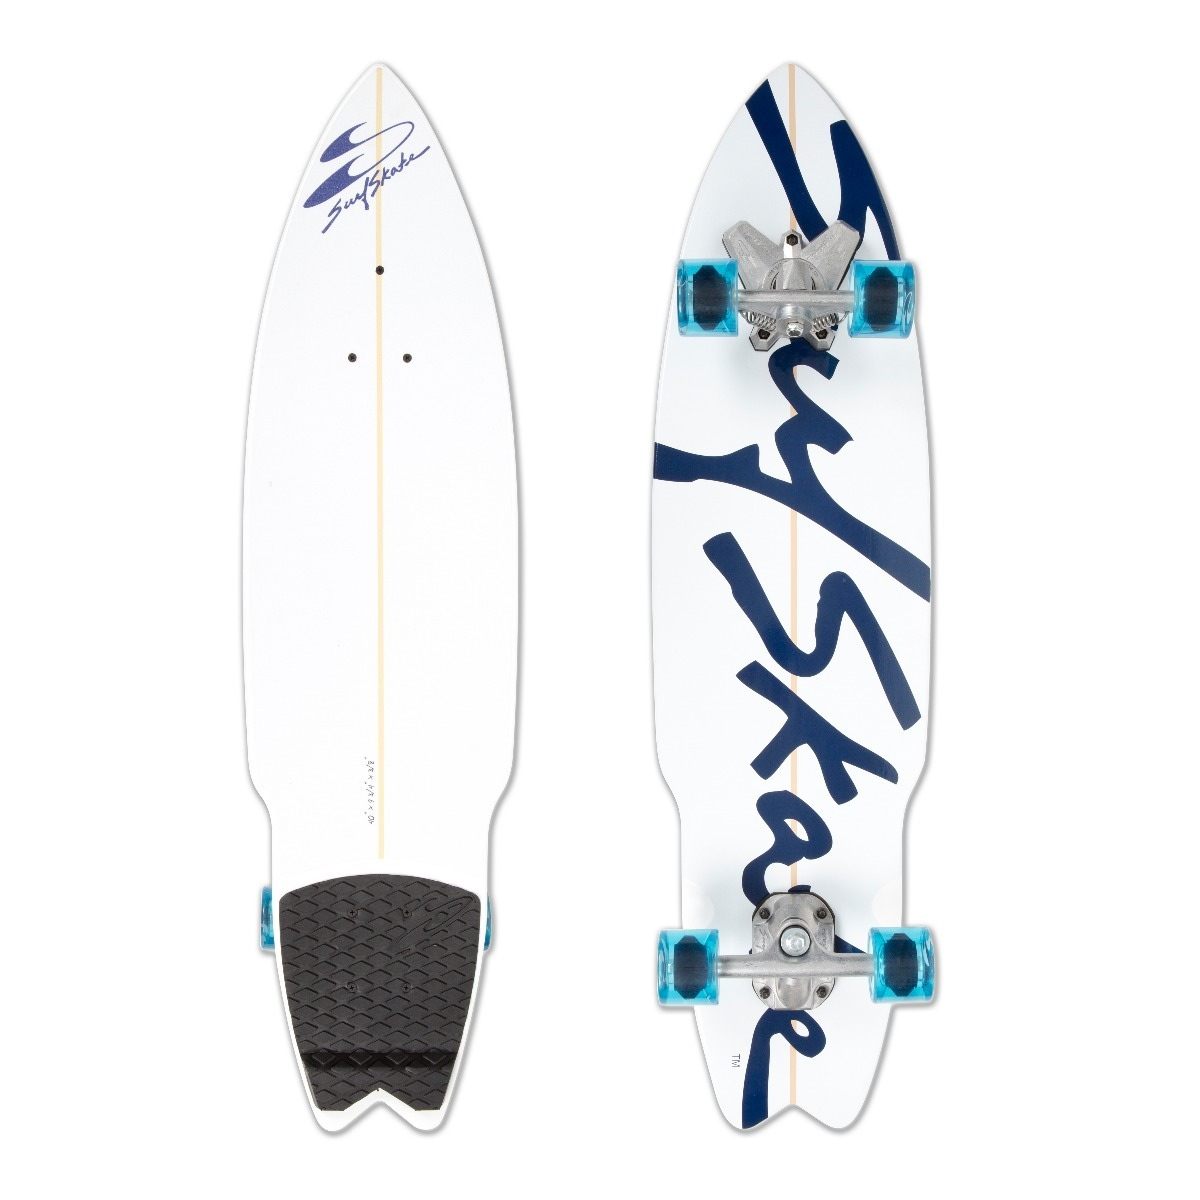 PREMIERE SERIES NAVY SWELL TECH